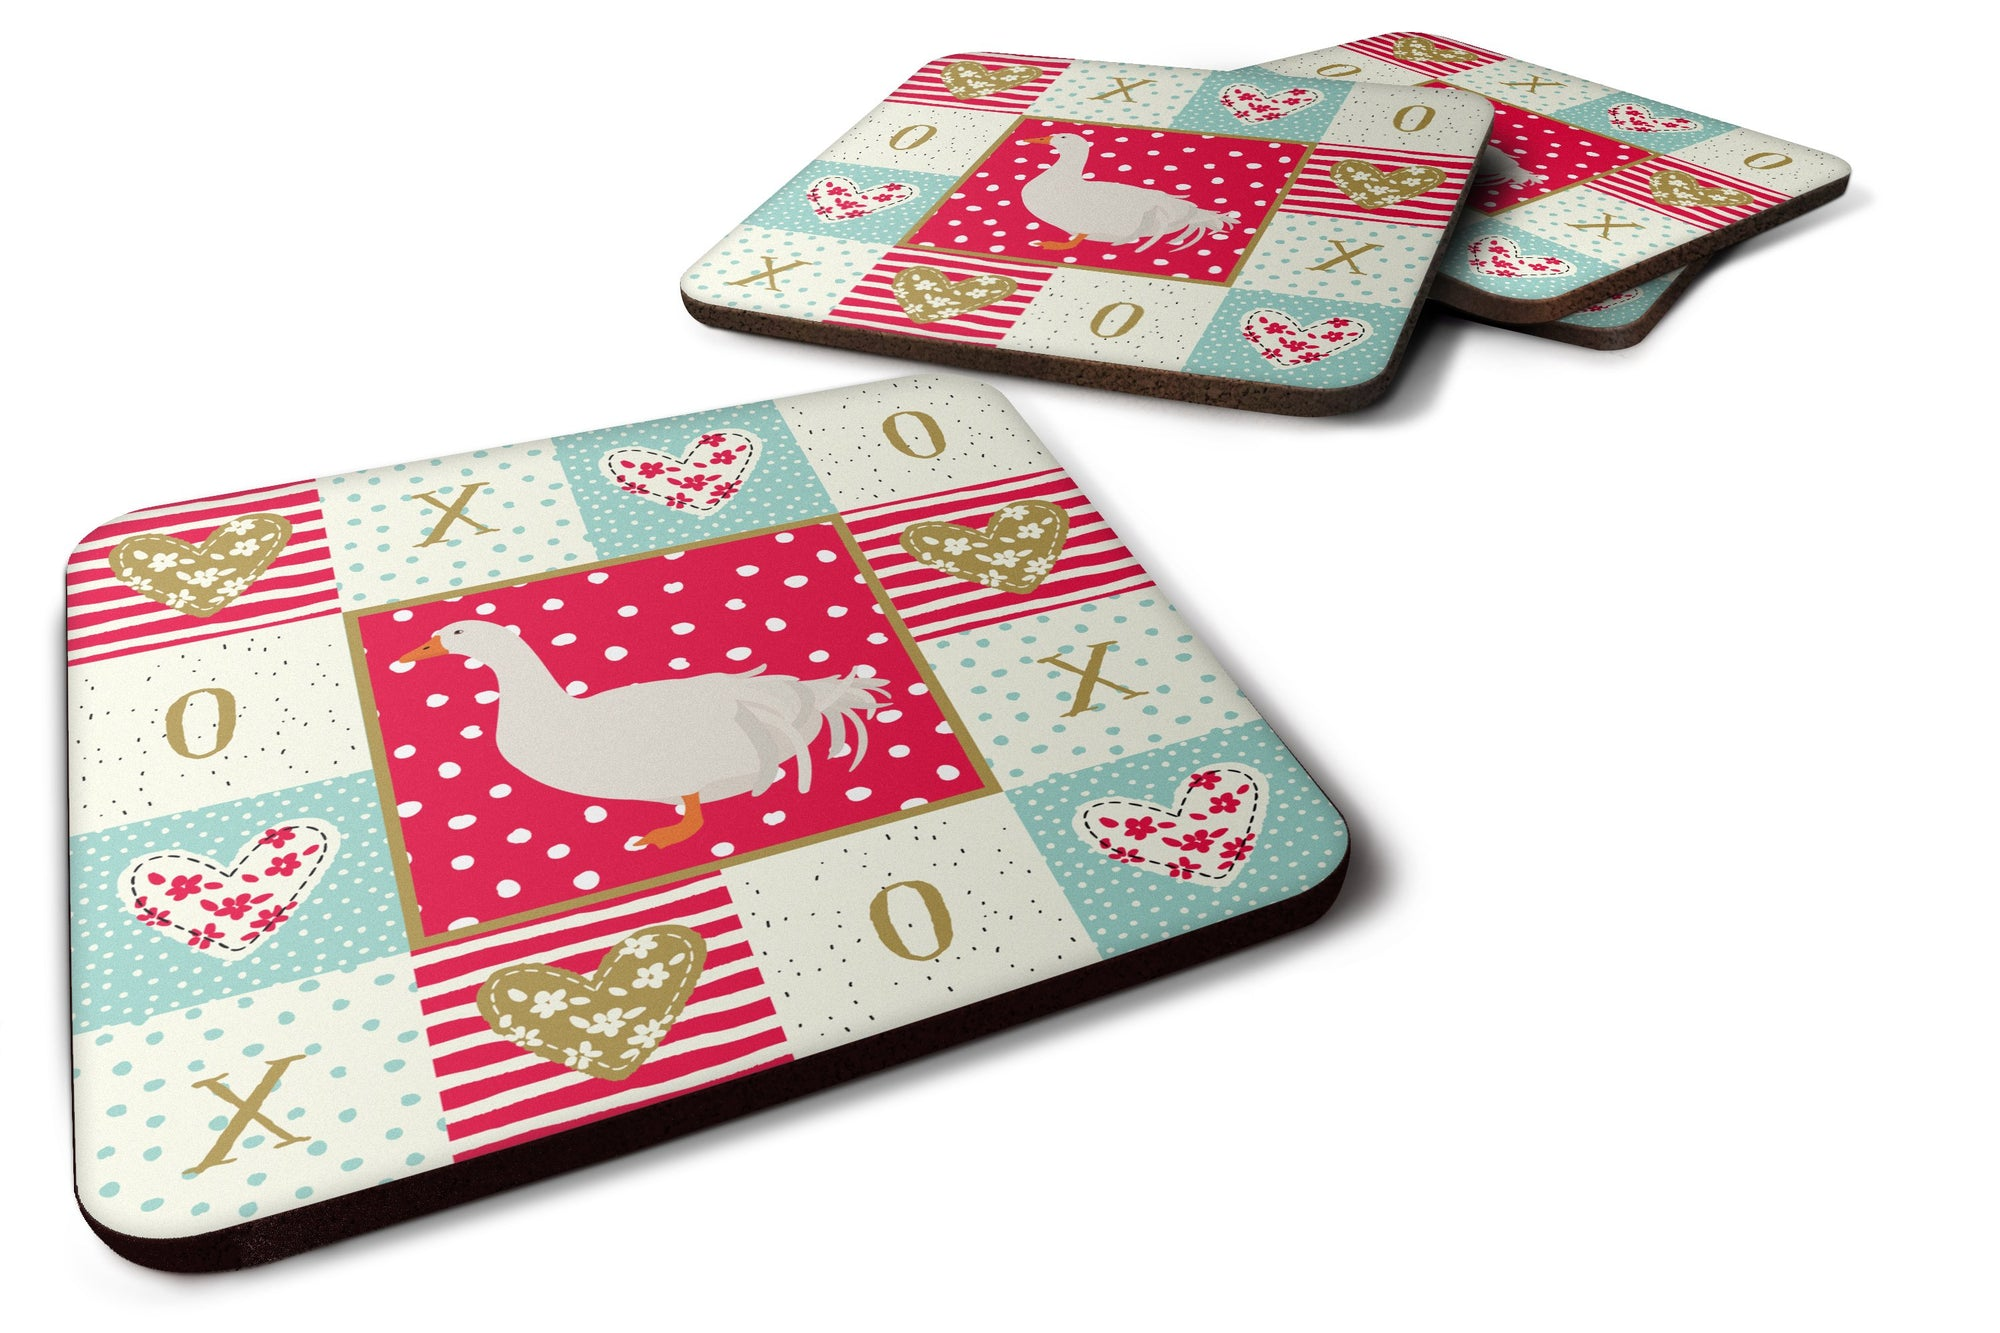 Set of 4 Sebastopol Goose Love Foam Coasters Set of 4 CK5329FC by Caroline's Treasures